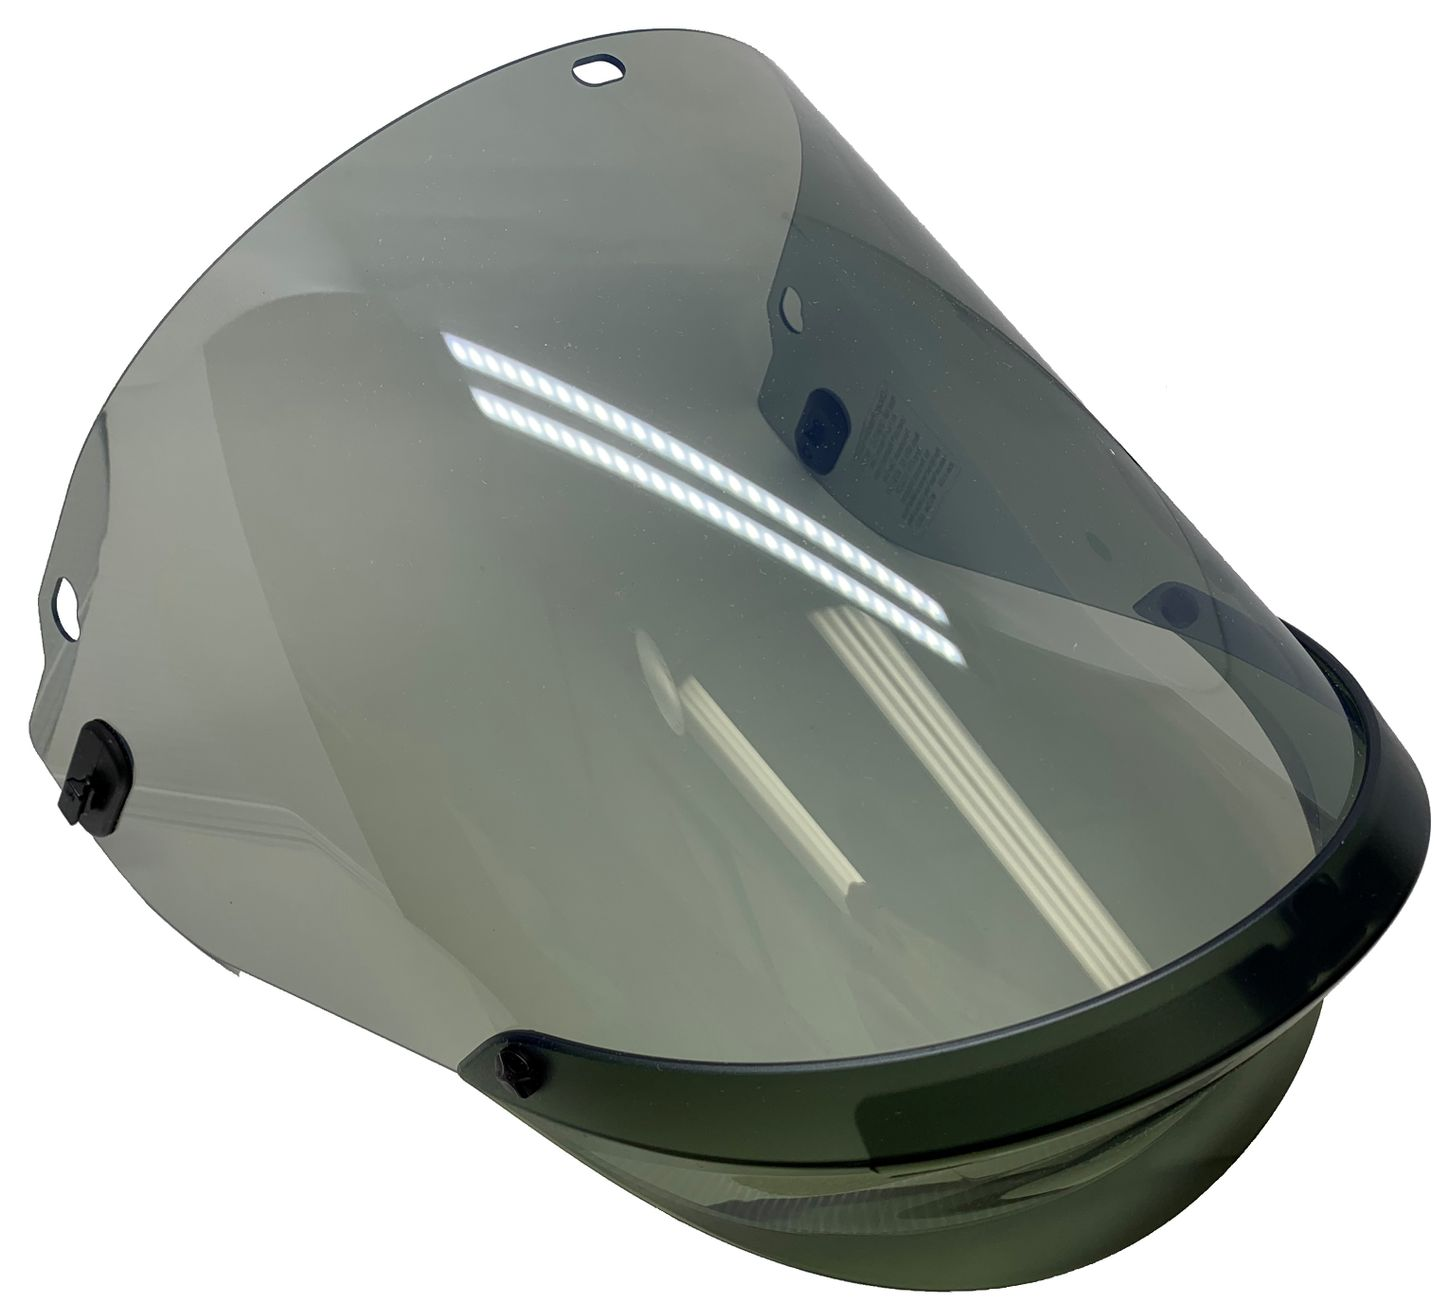 chicago-protective-apparel-replacement-visors-for-face-shields-wv-arc-12-grey-right.jpg